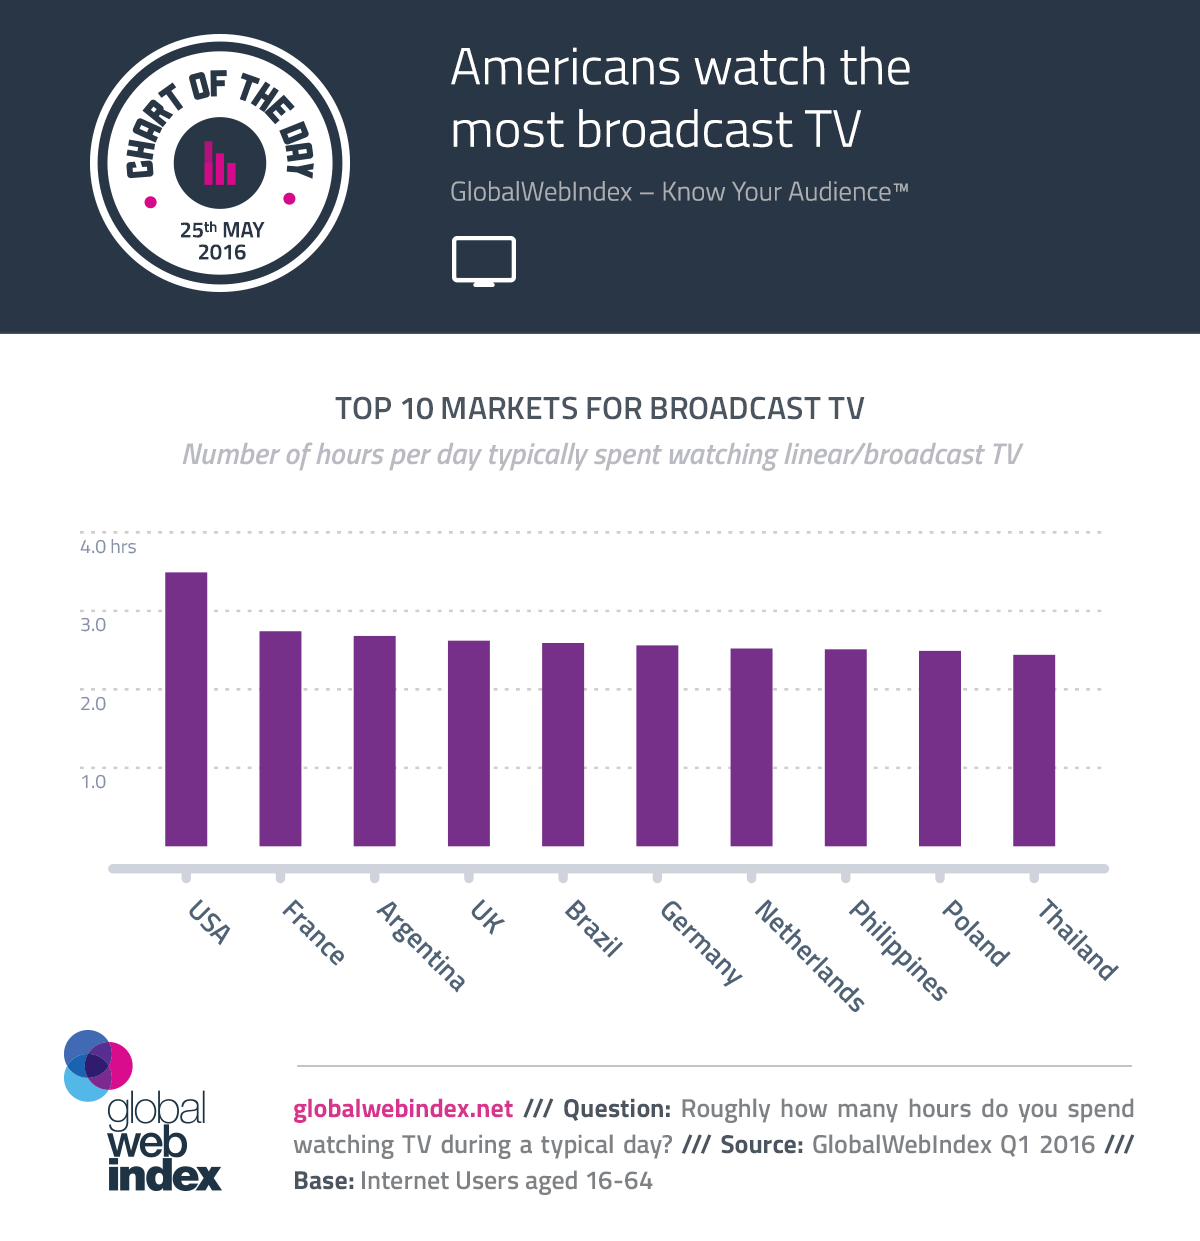 Americans watch the most broadcast TV